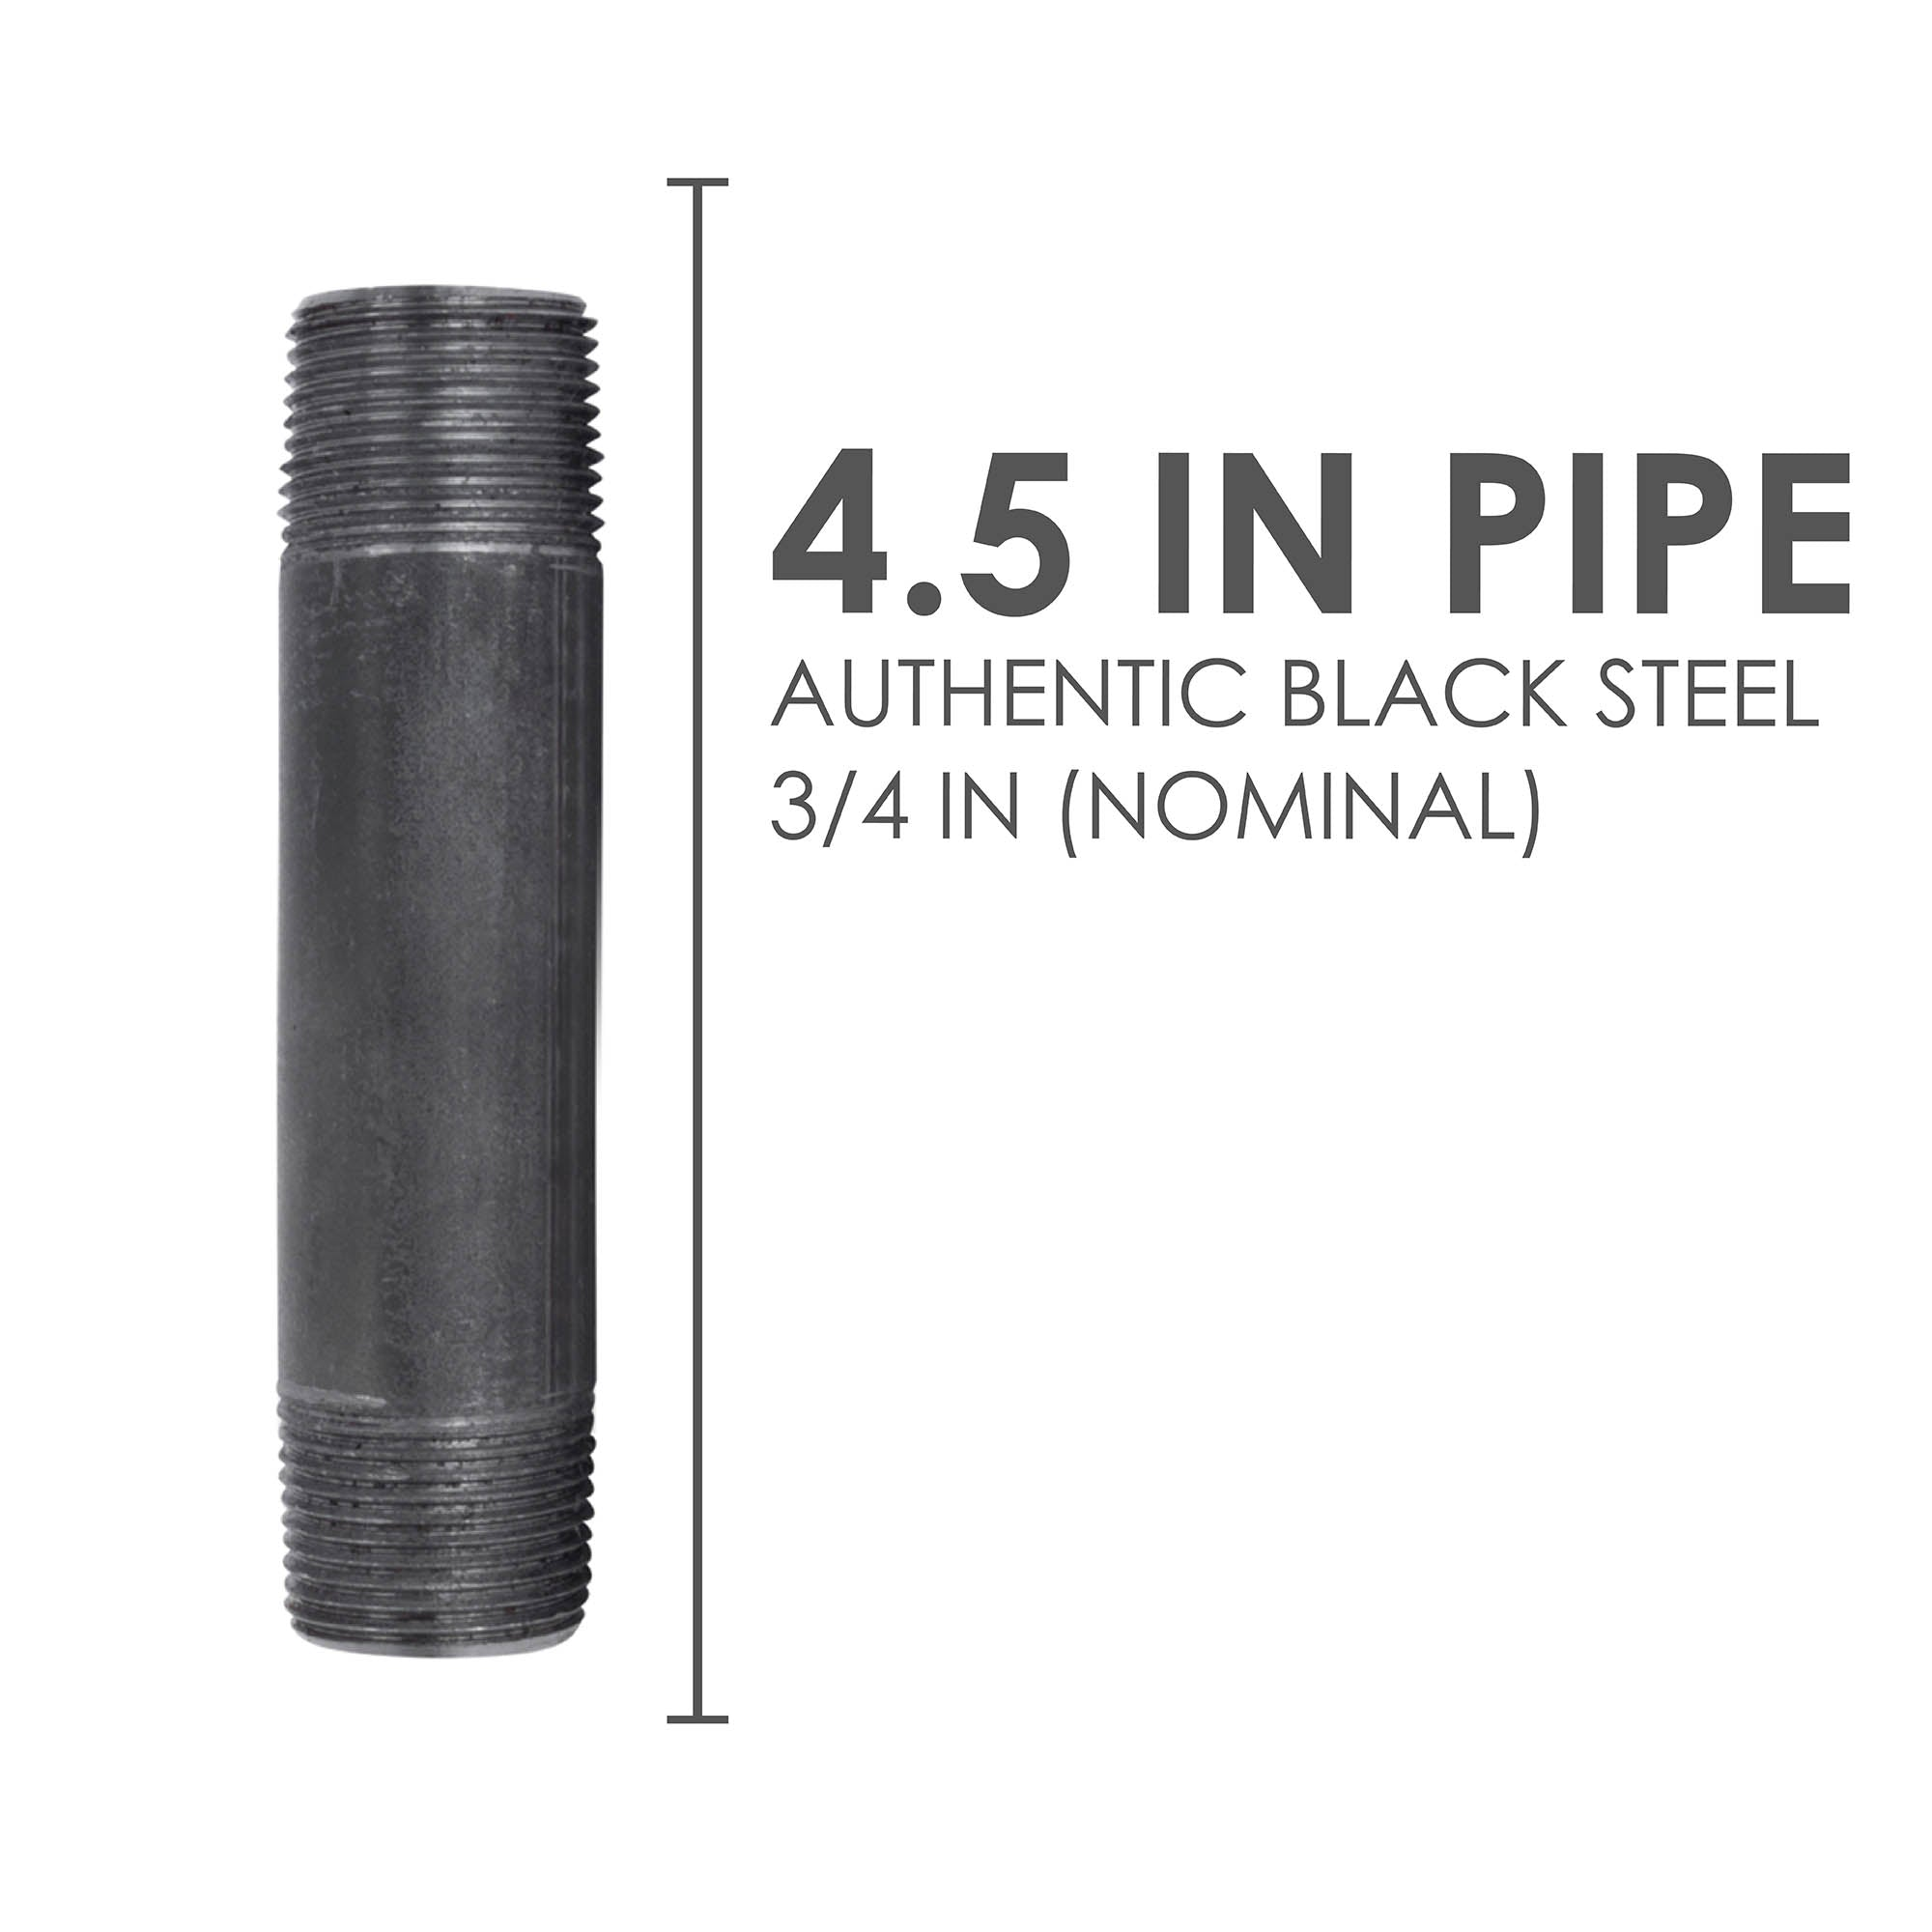 3/4 In X 4 1/2 In Black Pipe - Pipe Decor